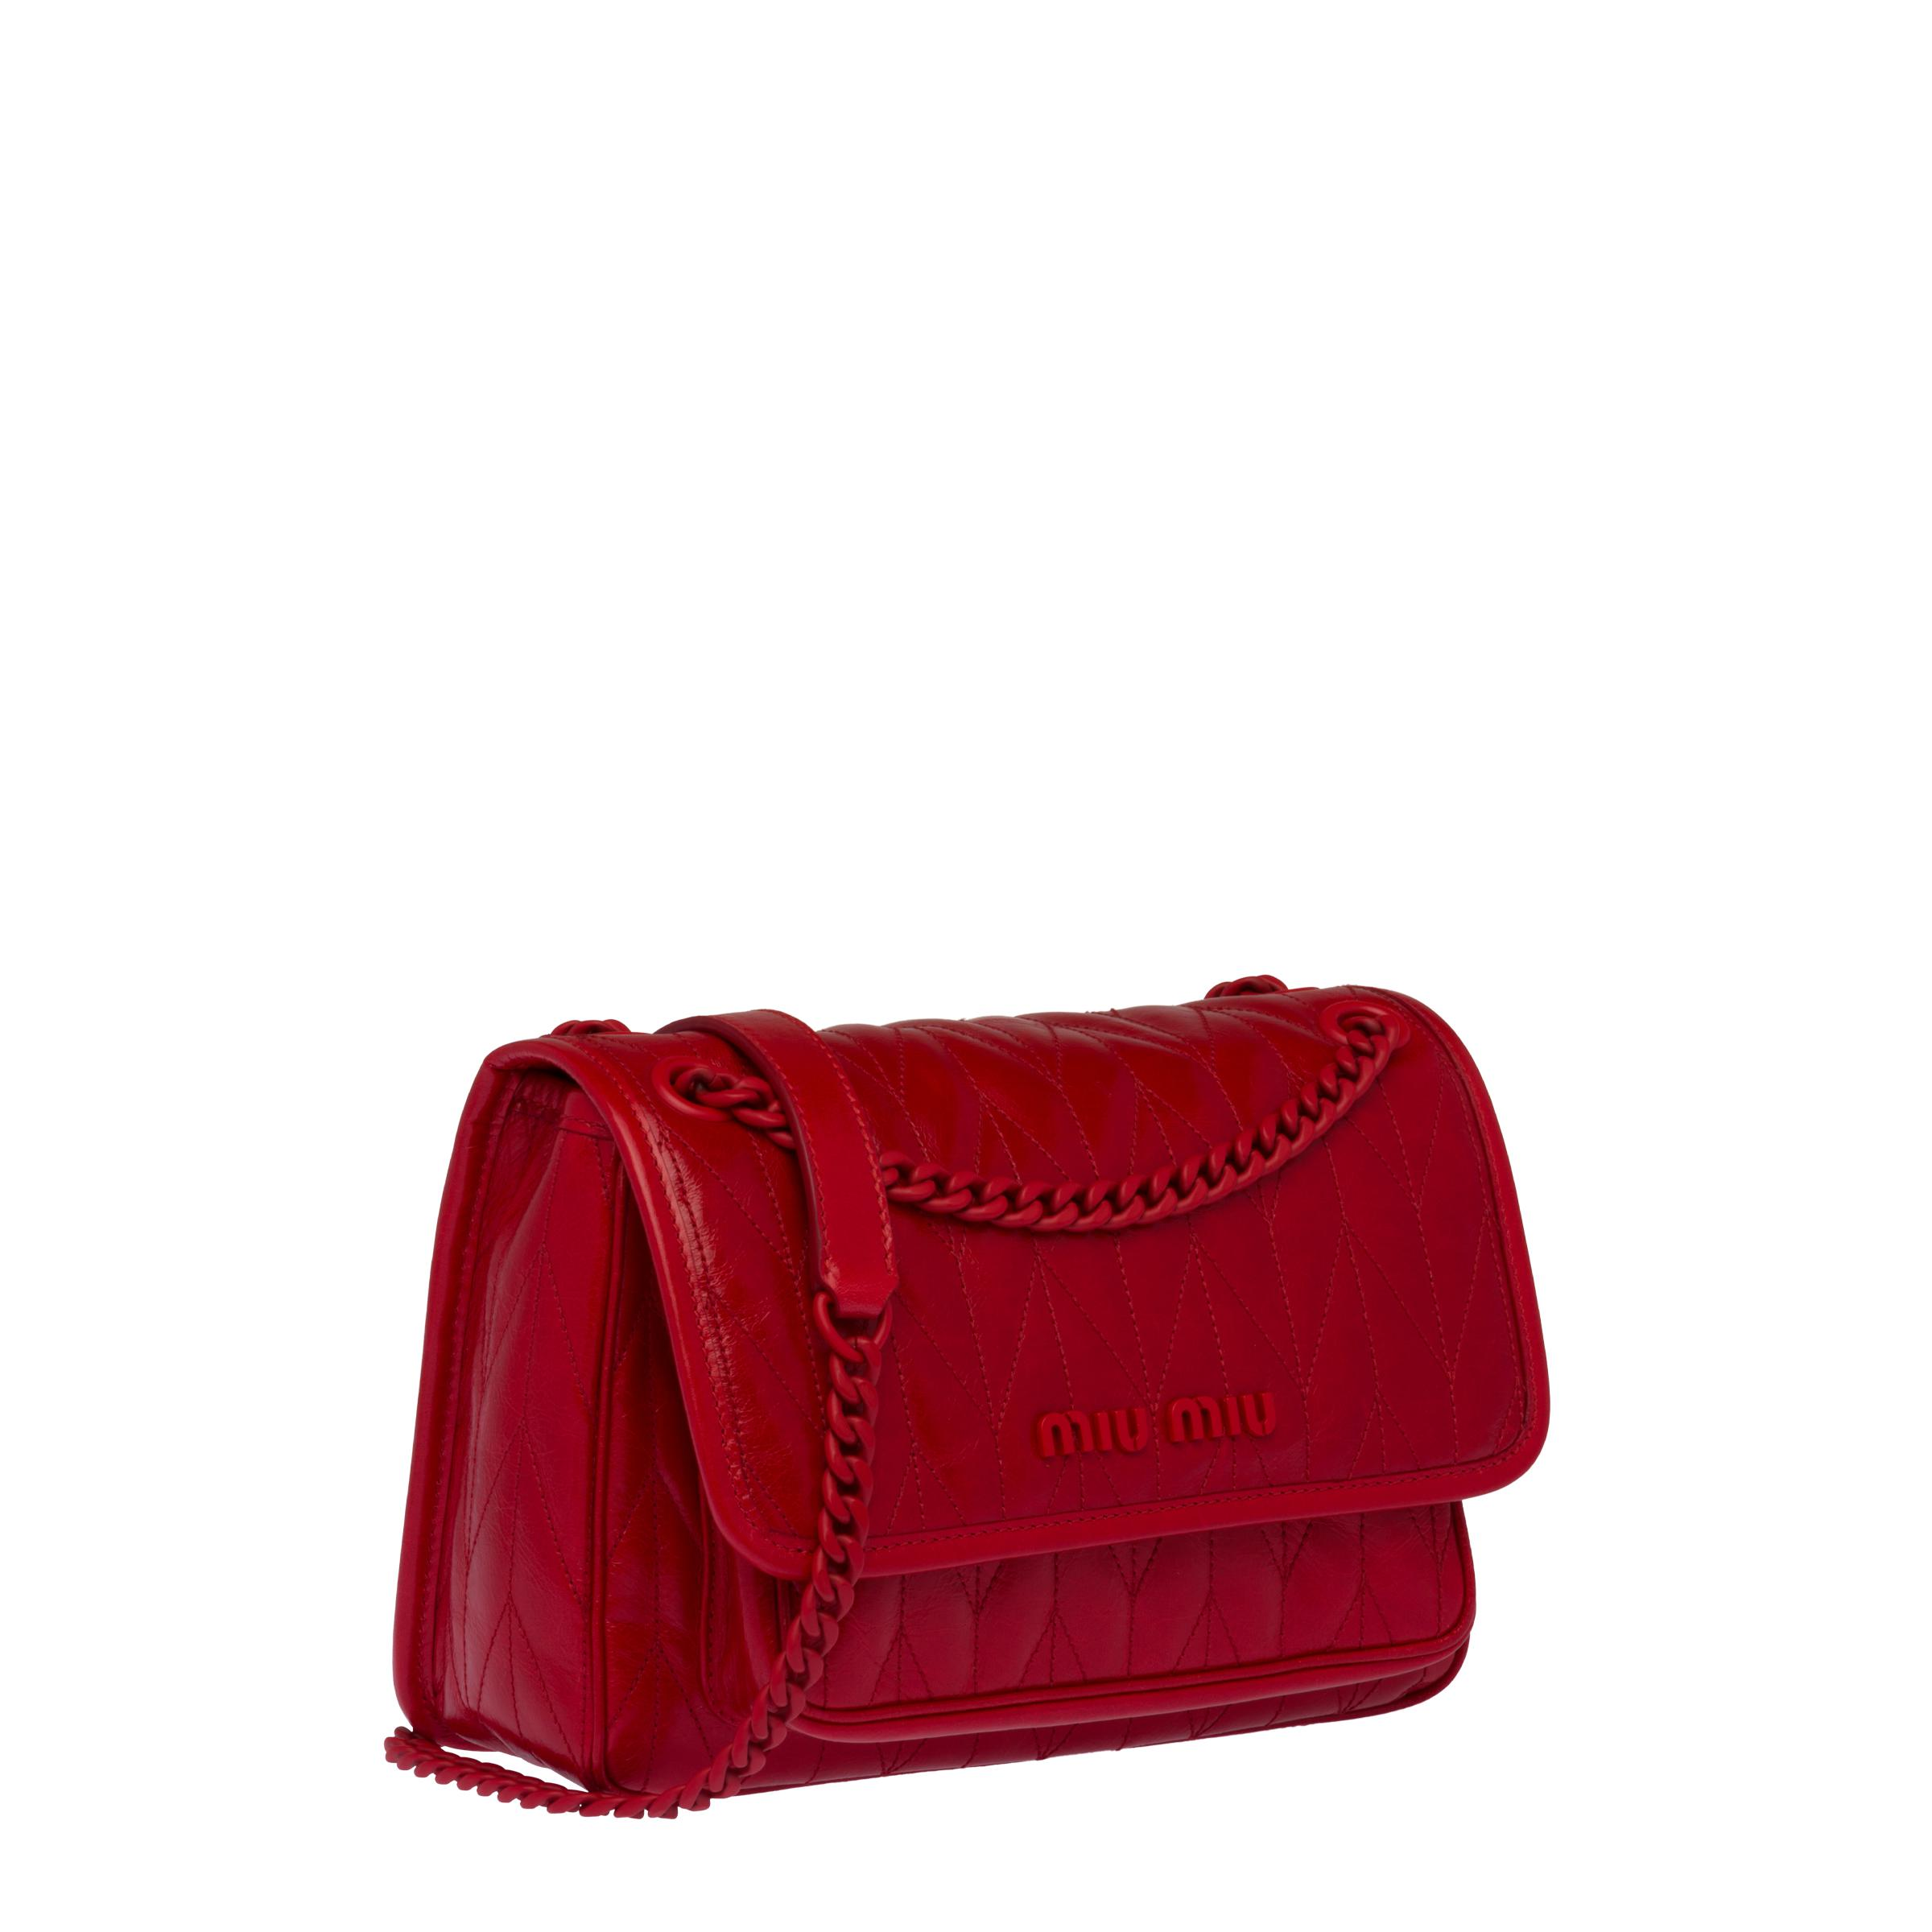 Quilted Shiny Leather Shoulder Bag Women Red 2